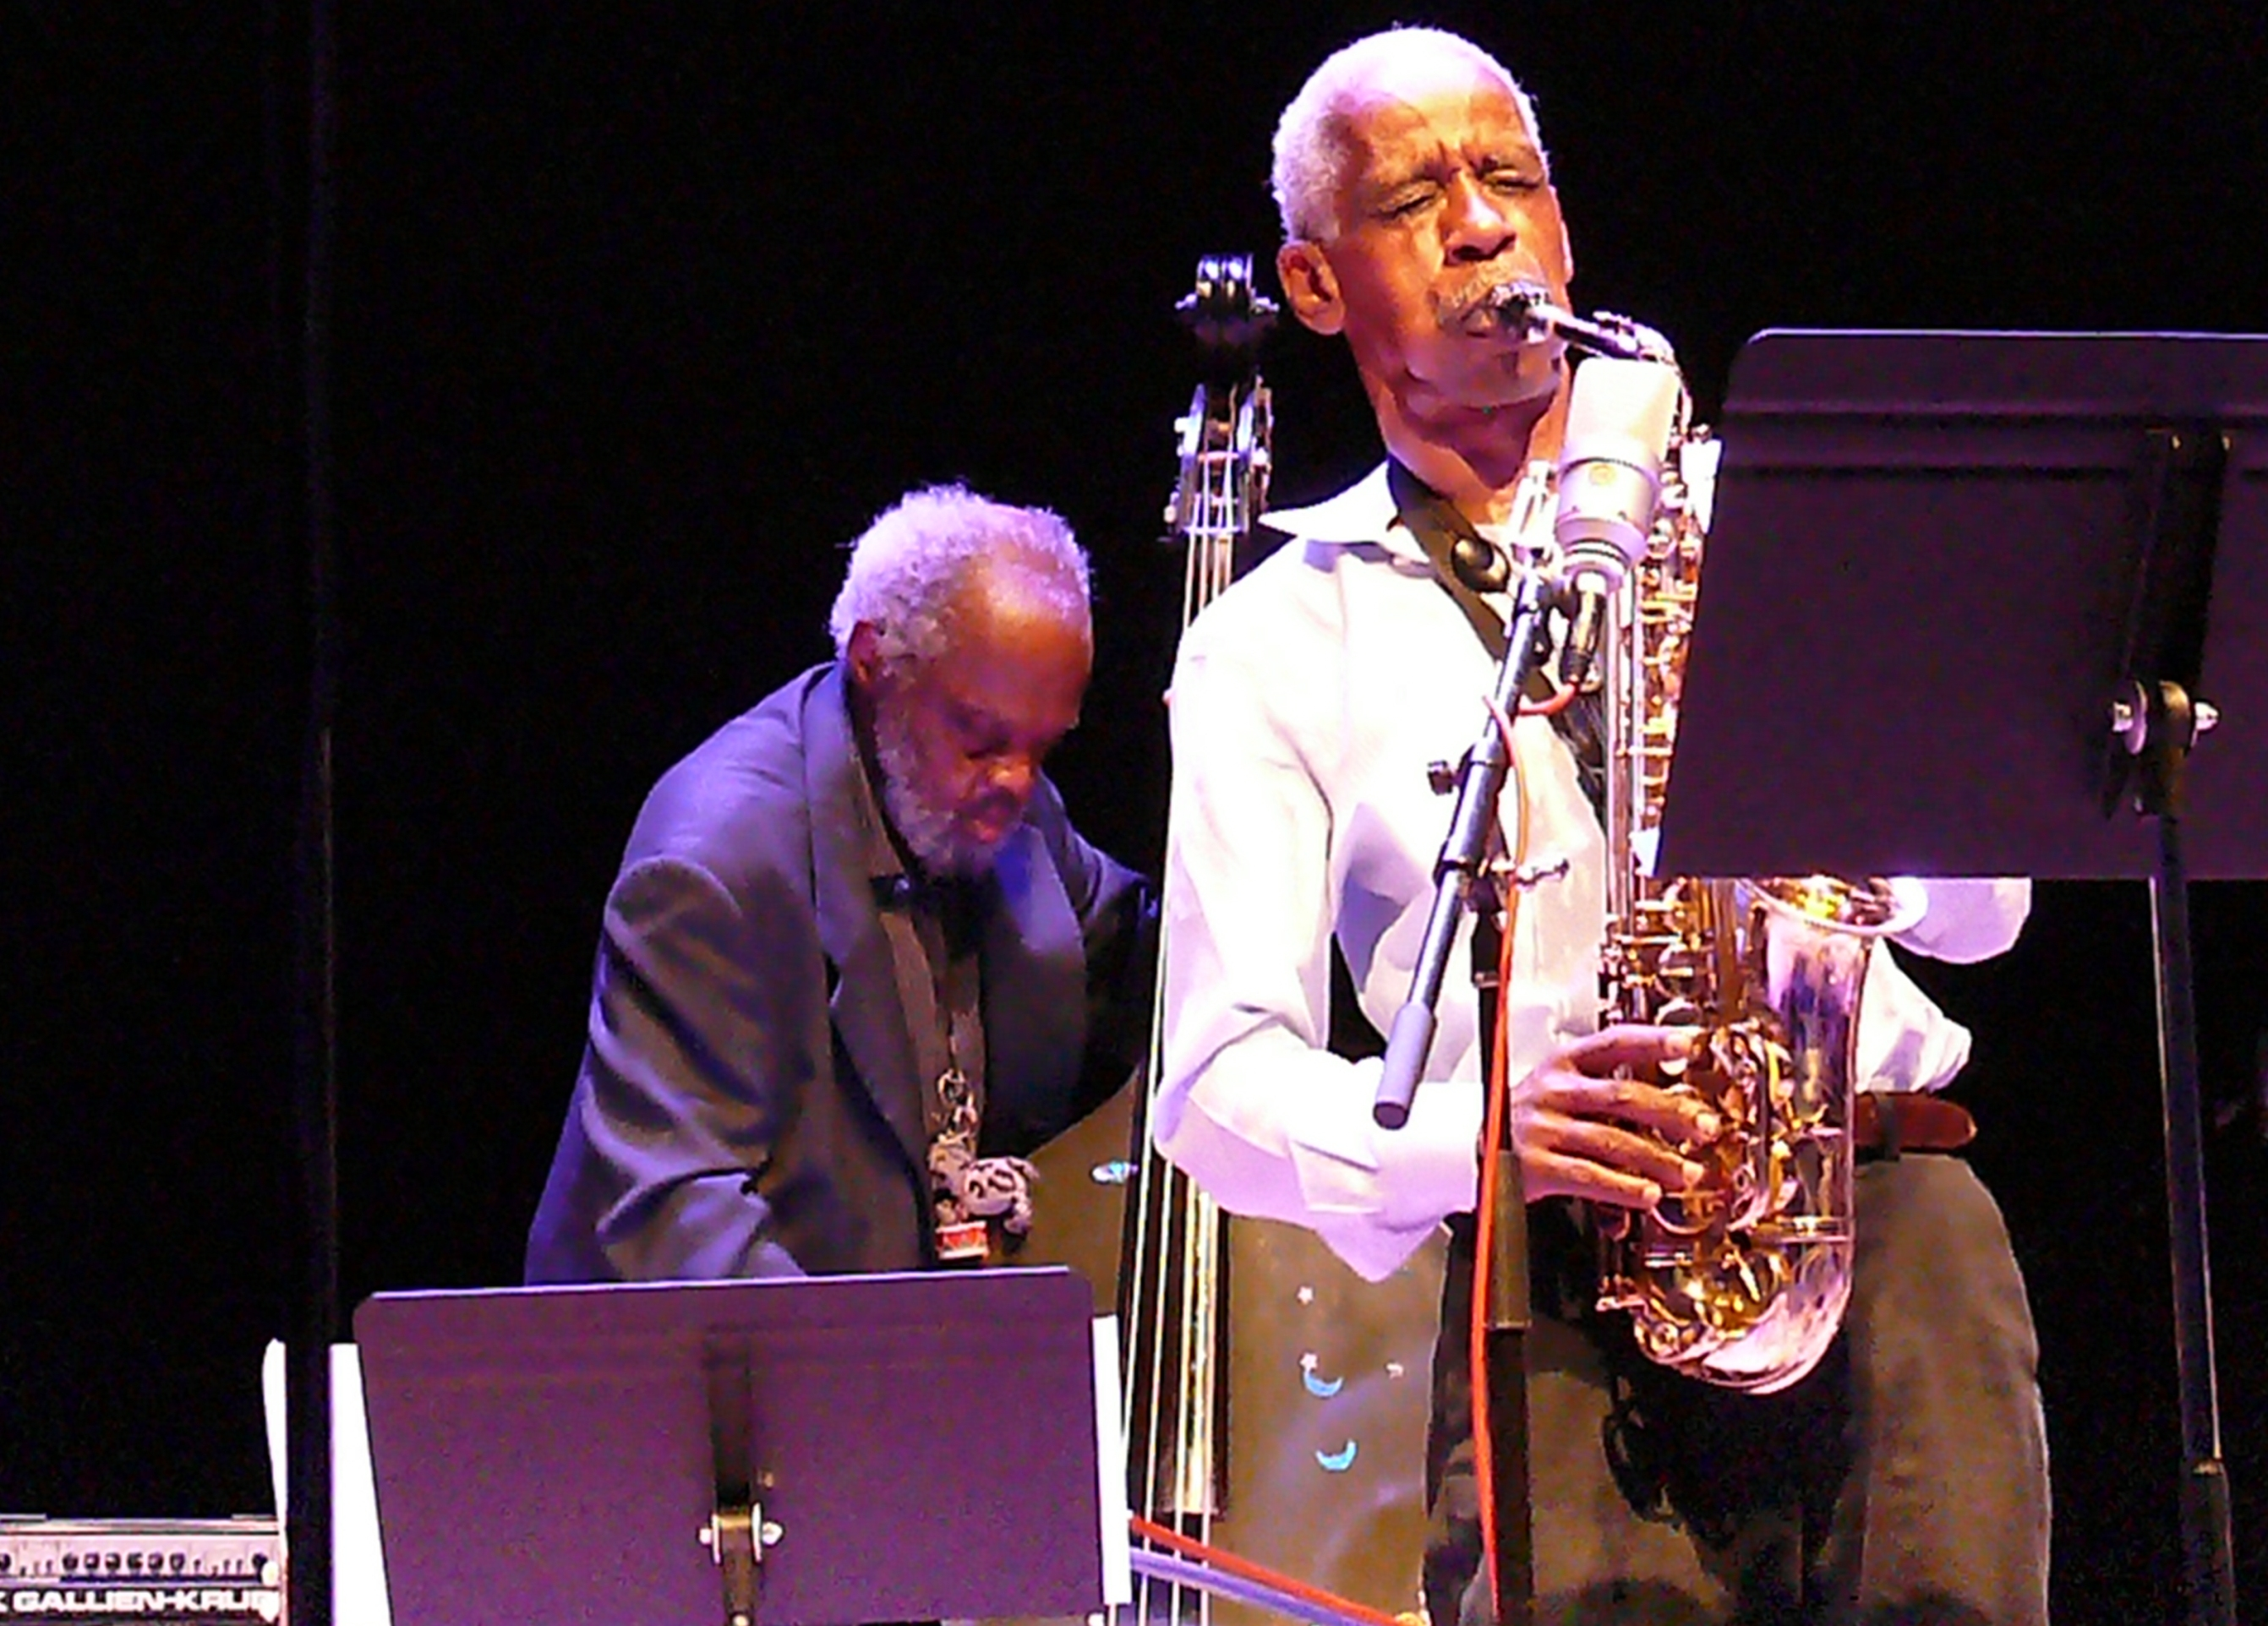 Henry grimes and roscoe mitchell at the vision festival, new york in june 2013